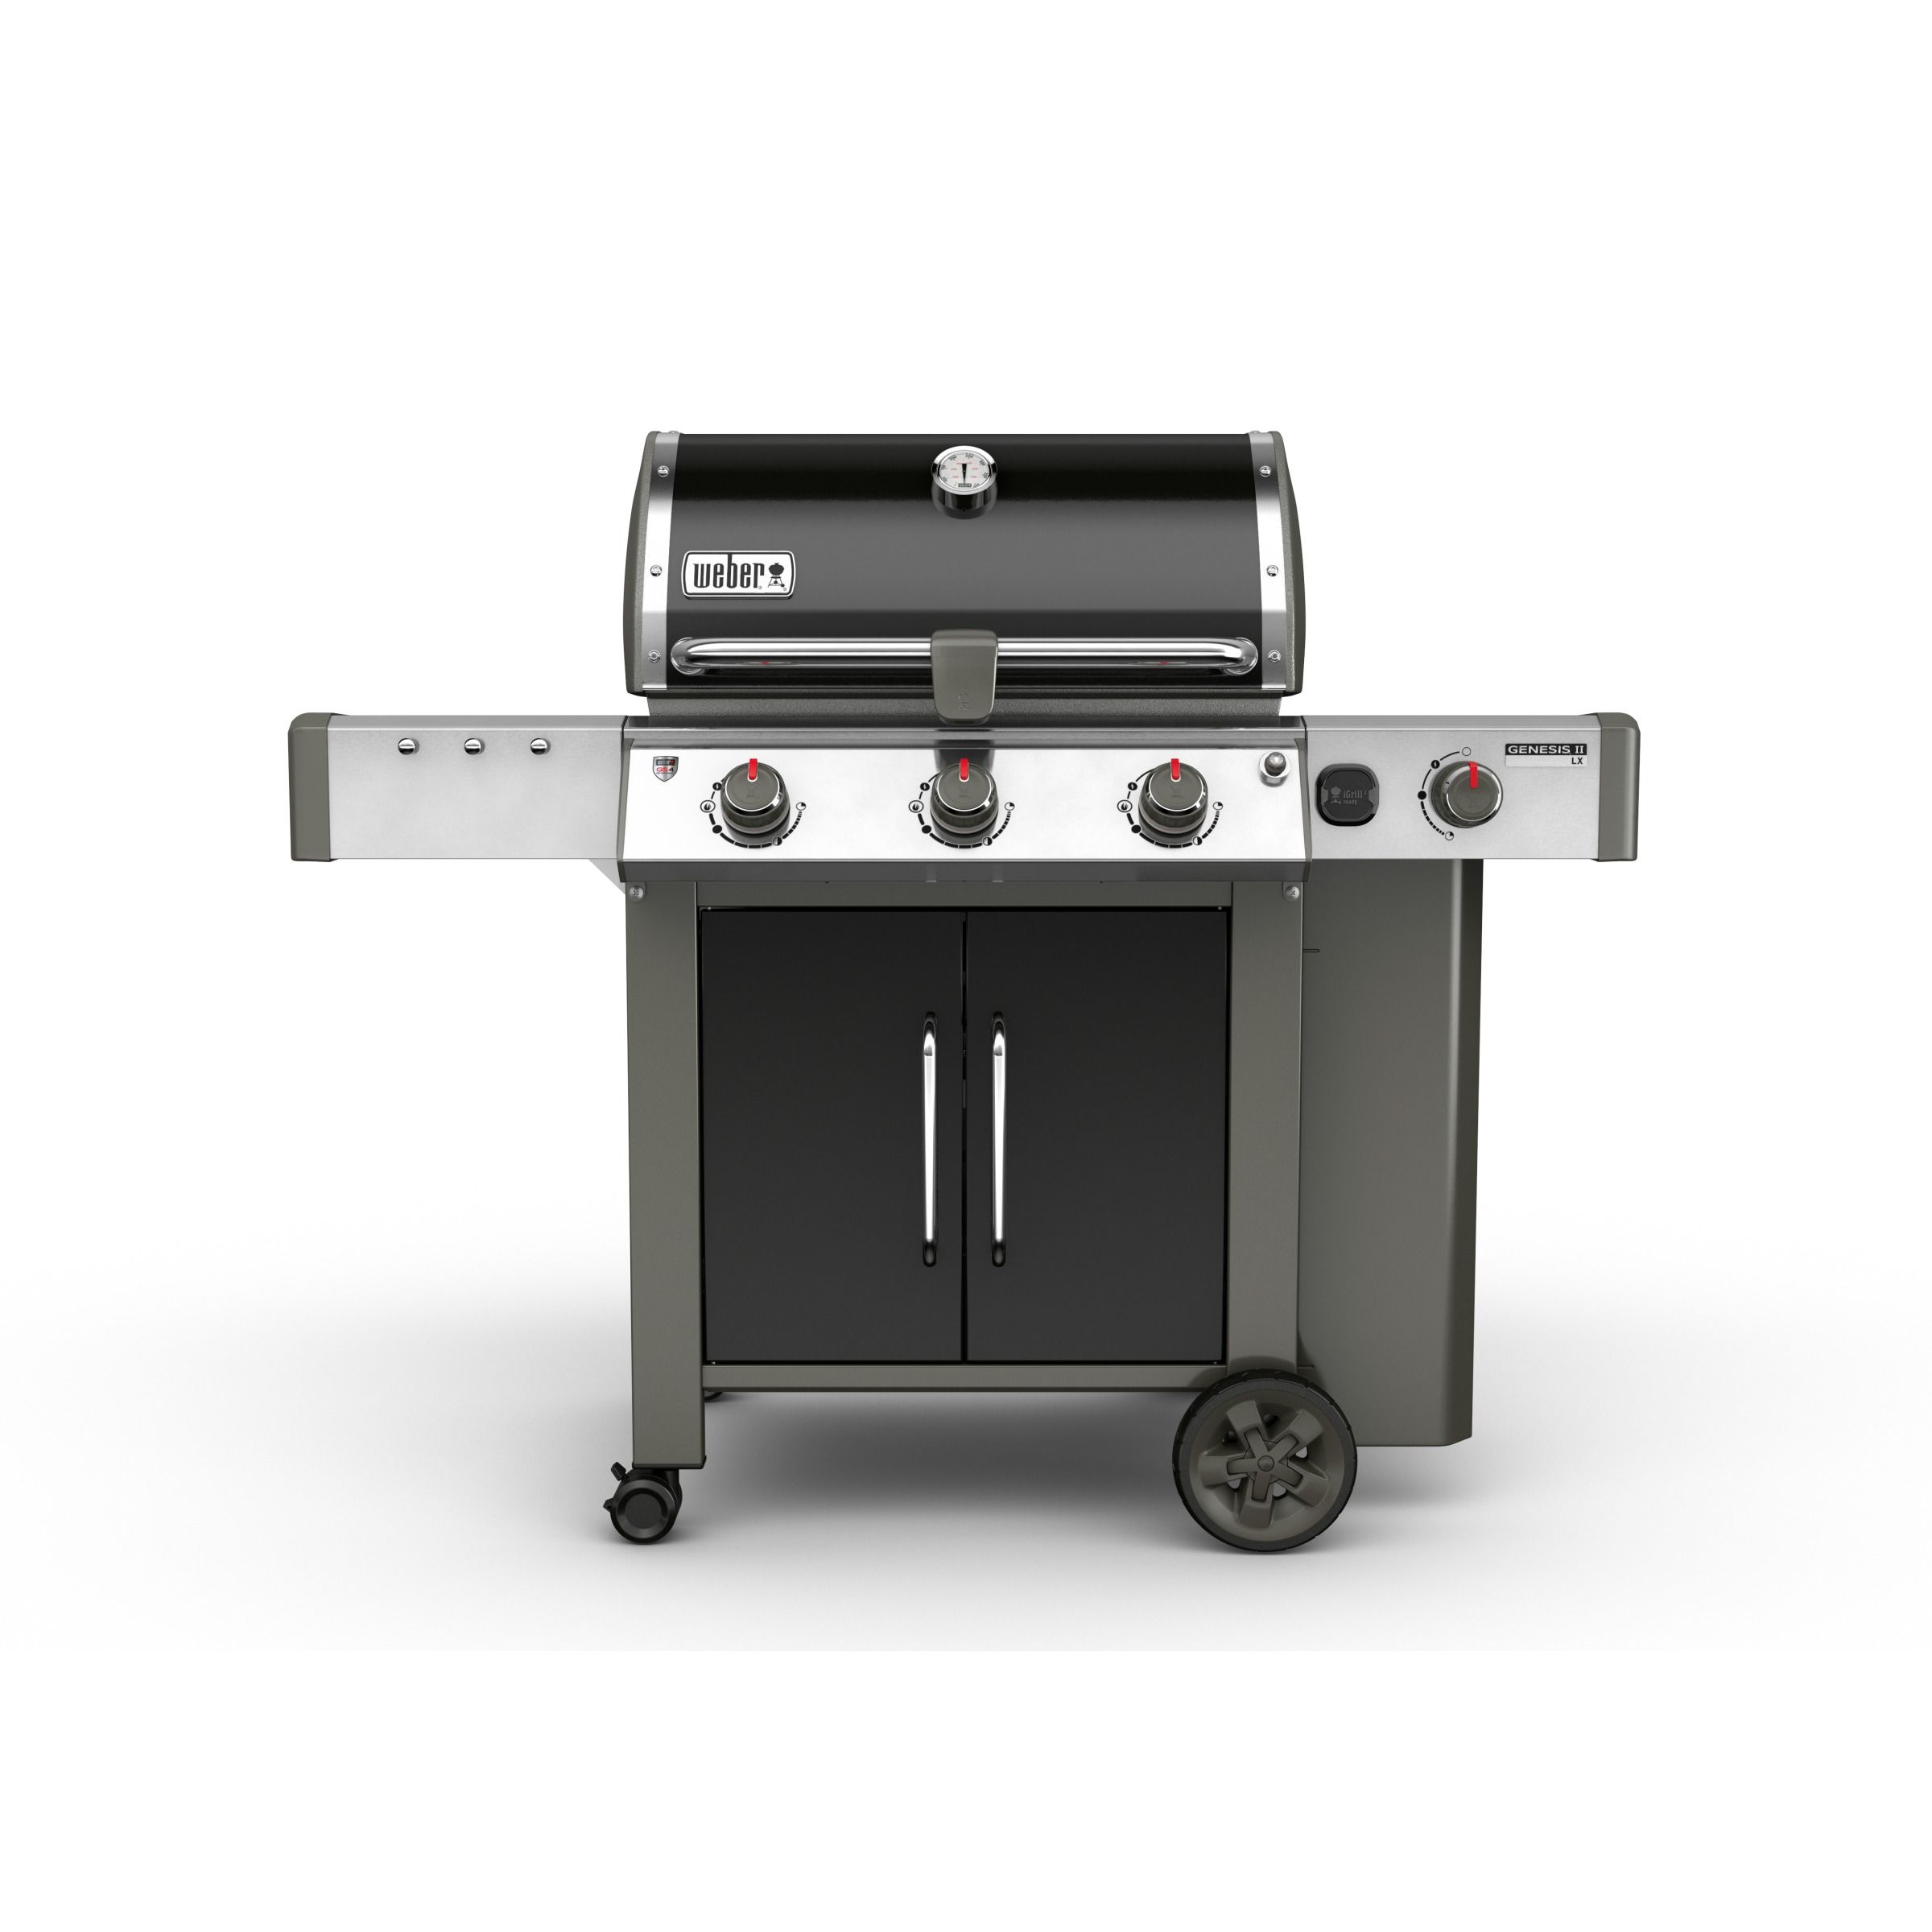 Karwei Barbecue Weber Genesis E 340 Lx Premium Black In 2019 Products Grilling